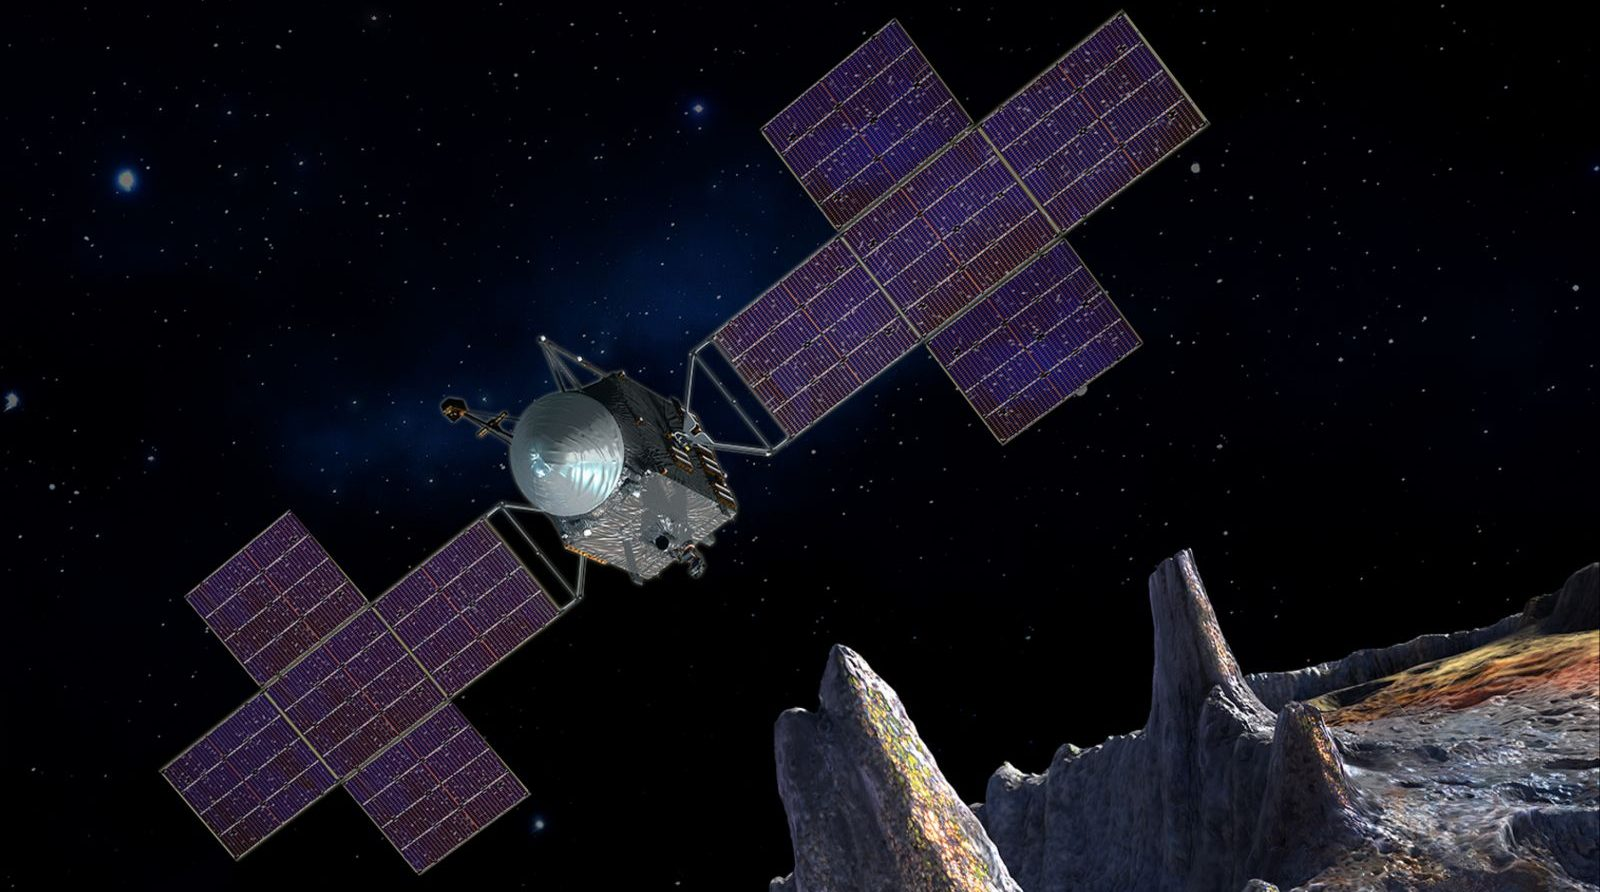 An artists rendering of the Psyche spacecraft. Photo Credit: NASA